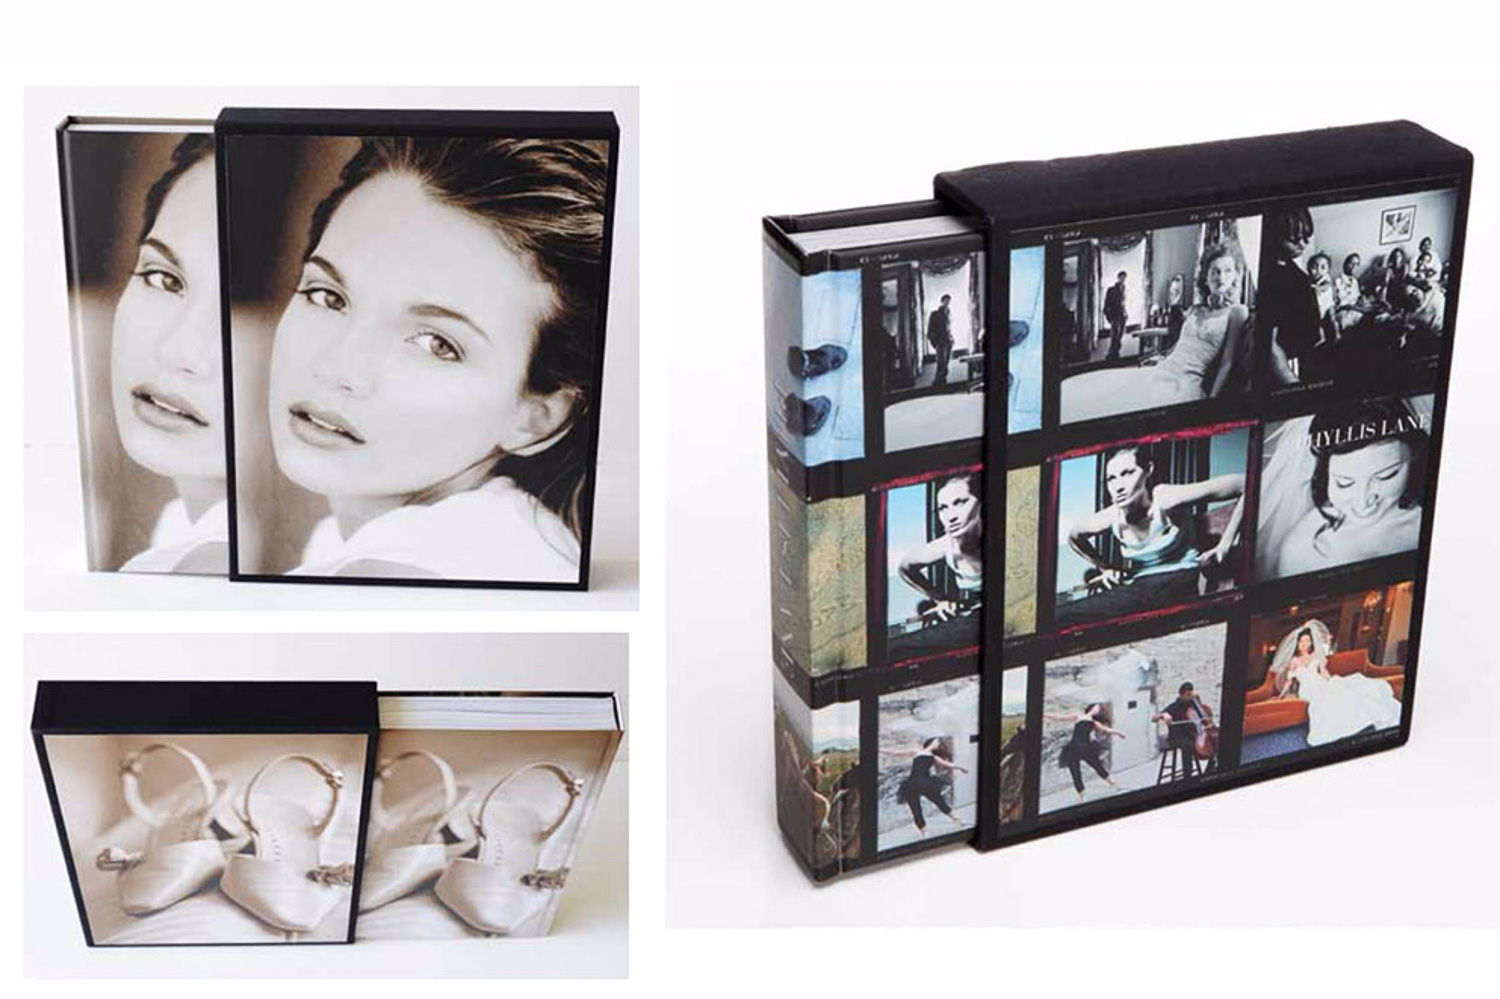 Table Books - Mitzvah Photography - 5th Avenue Digital